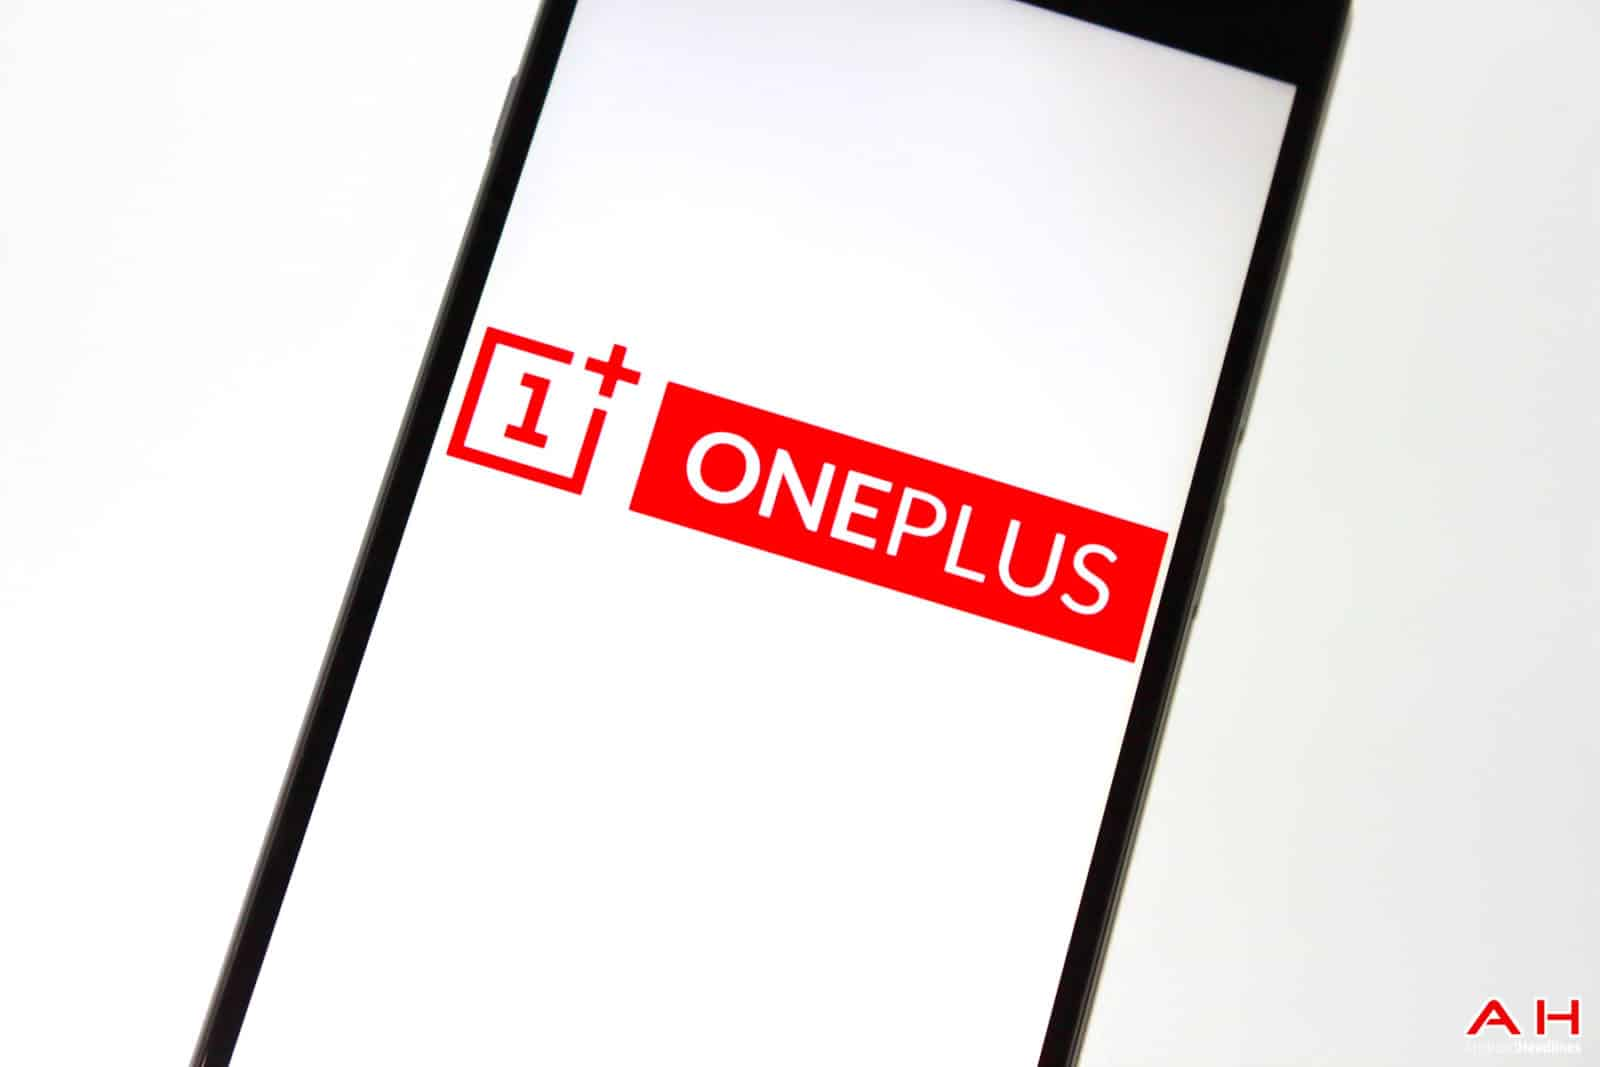 AH Oneplus 2 One Plus Two OP OPT Logo - Chris 2015 -21